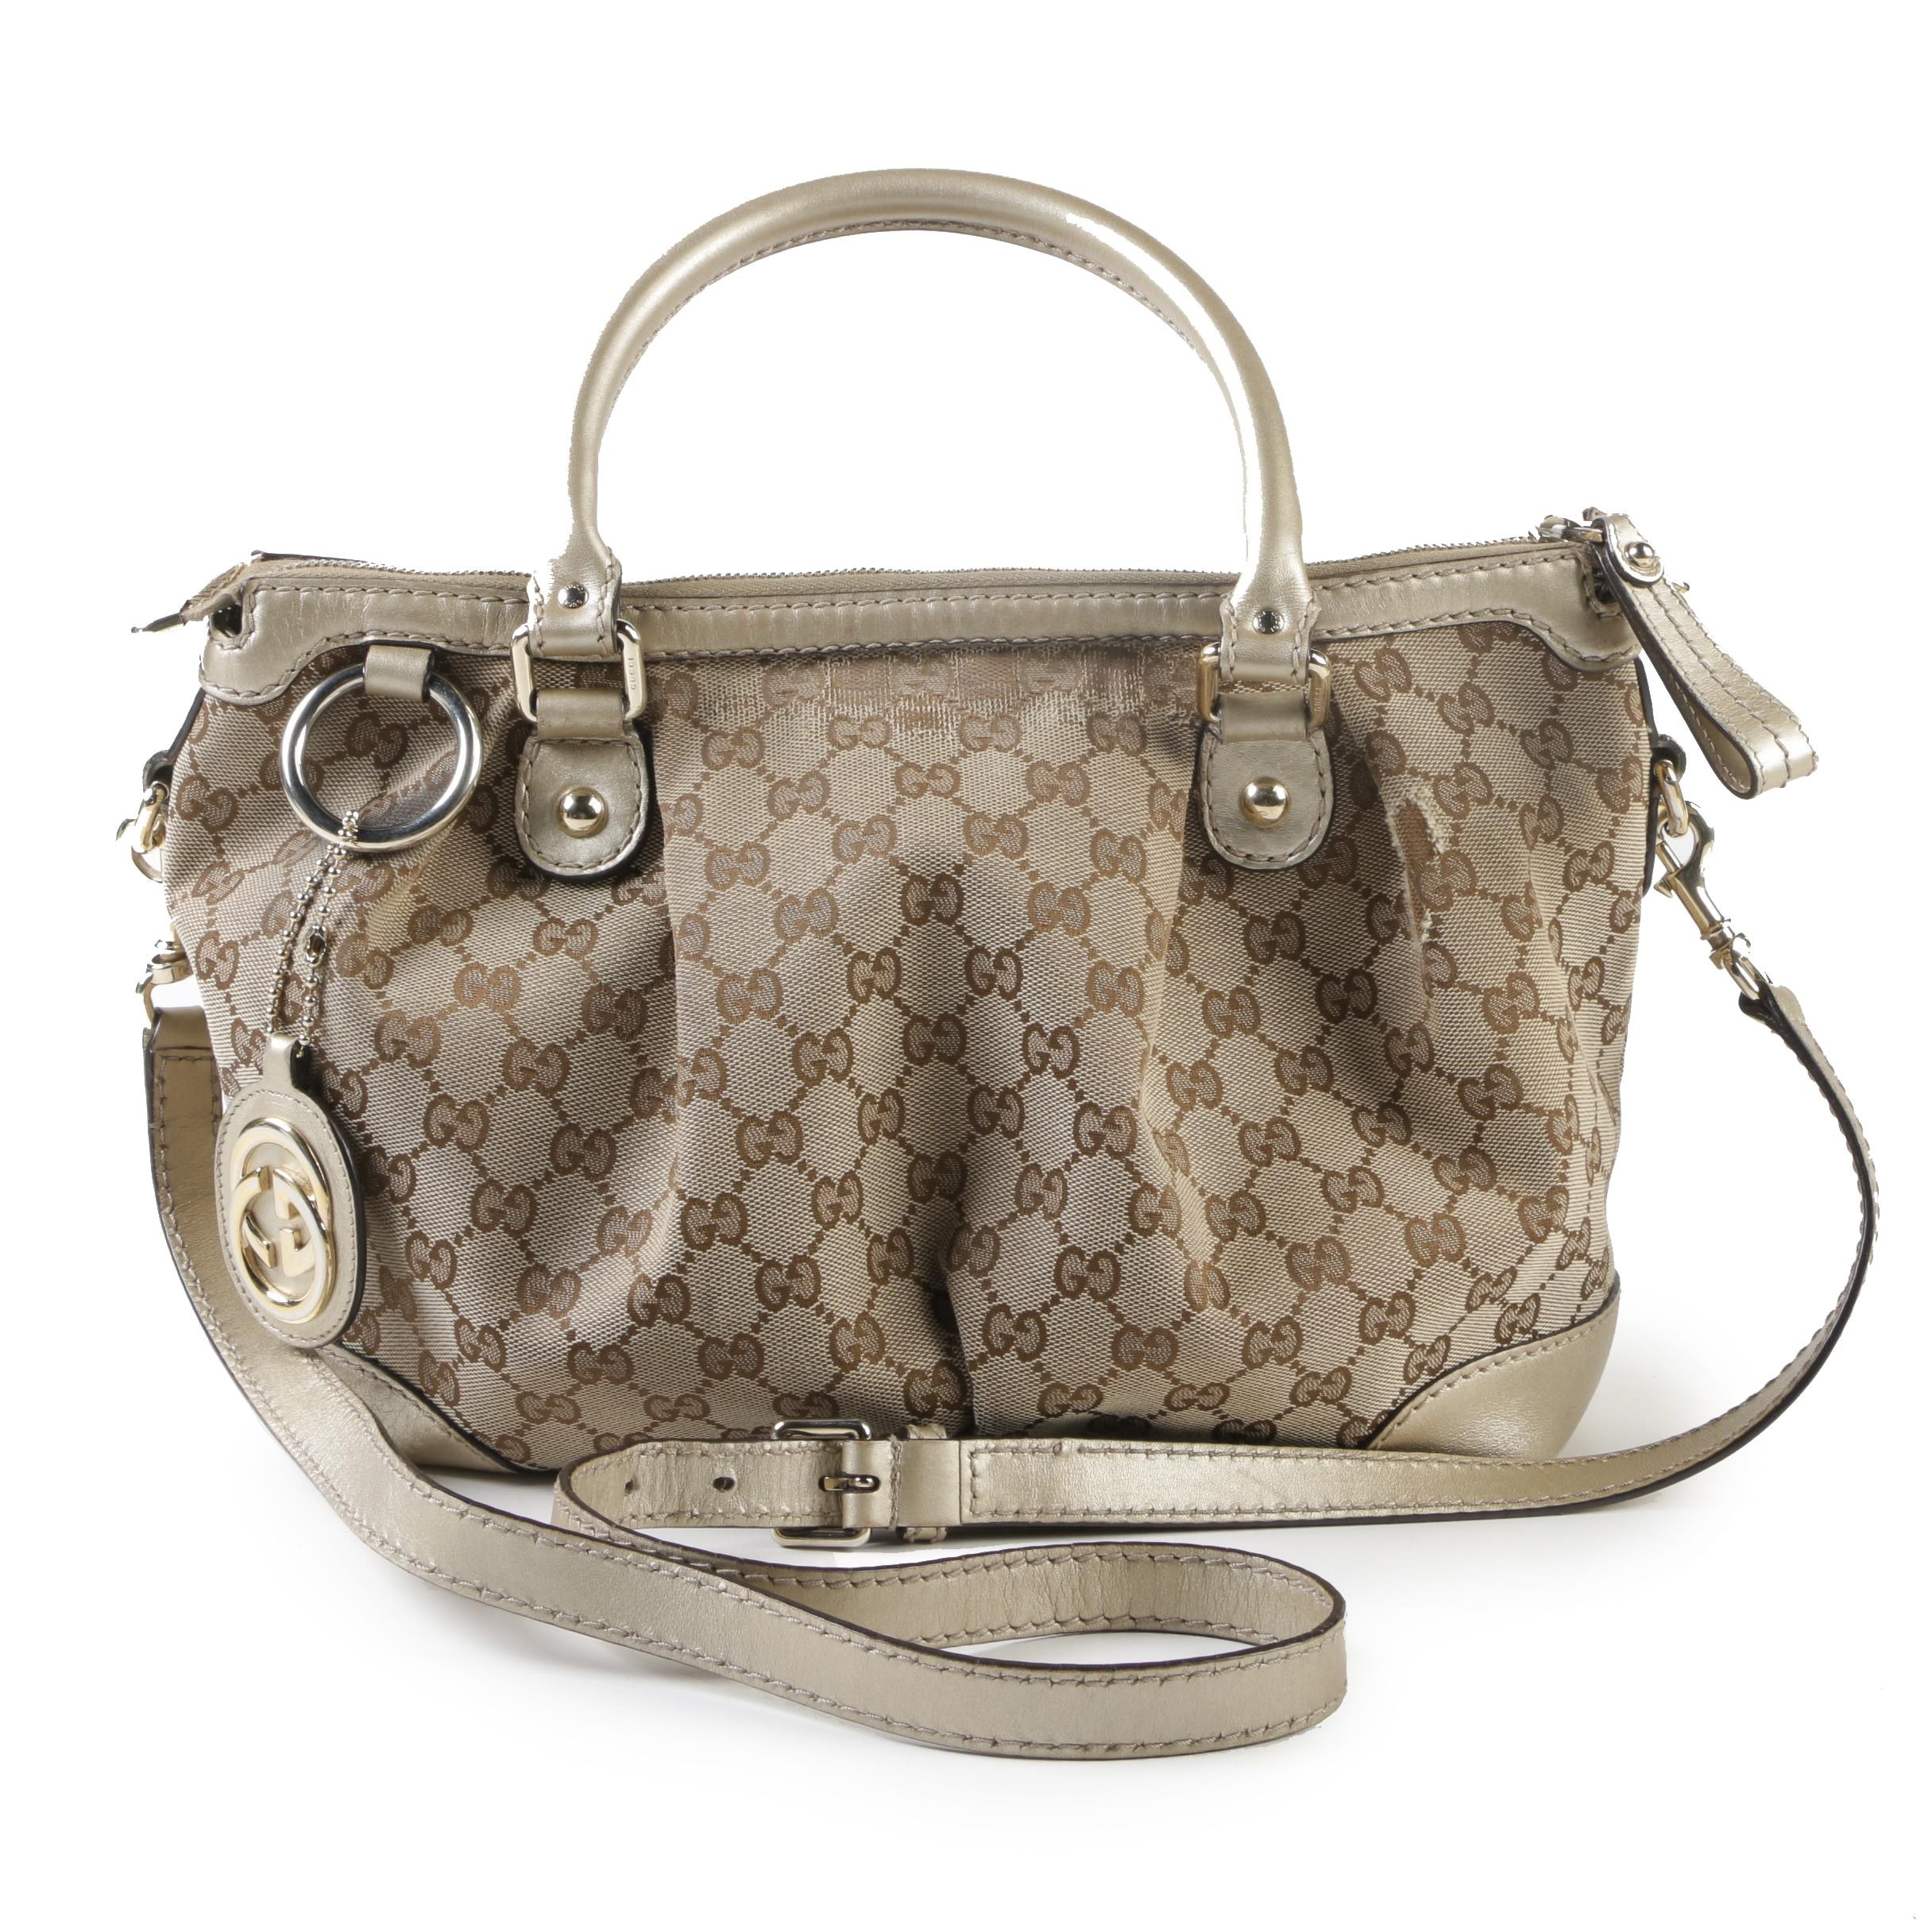 Gucci GG Tan Canvas and Metallic Beige Leather Sukey Satchel with Logo Charm